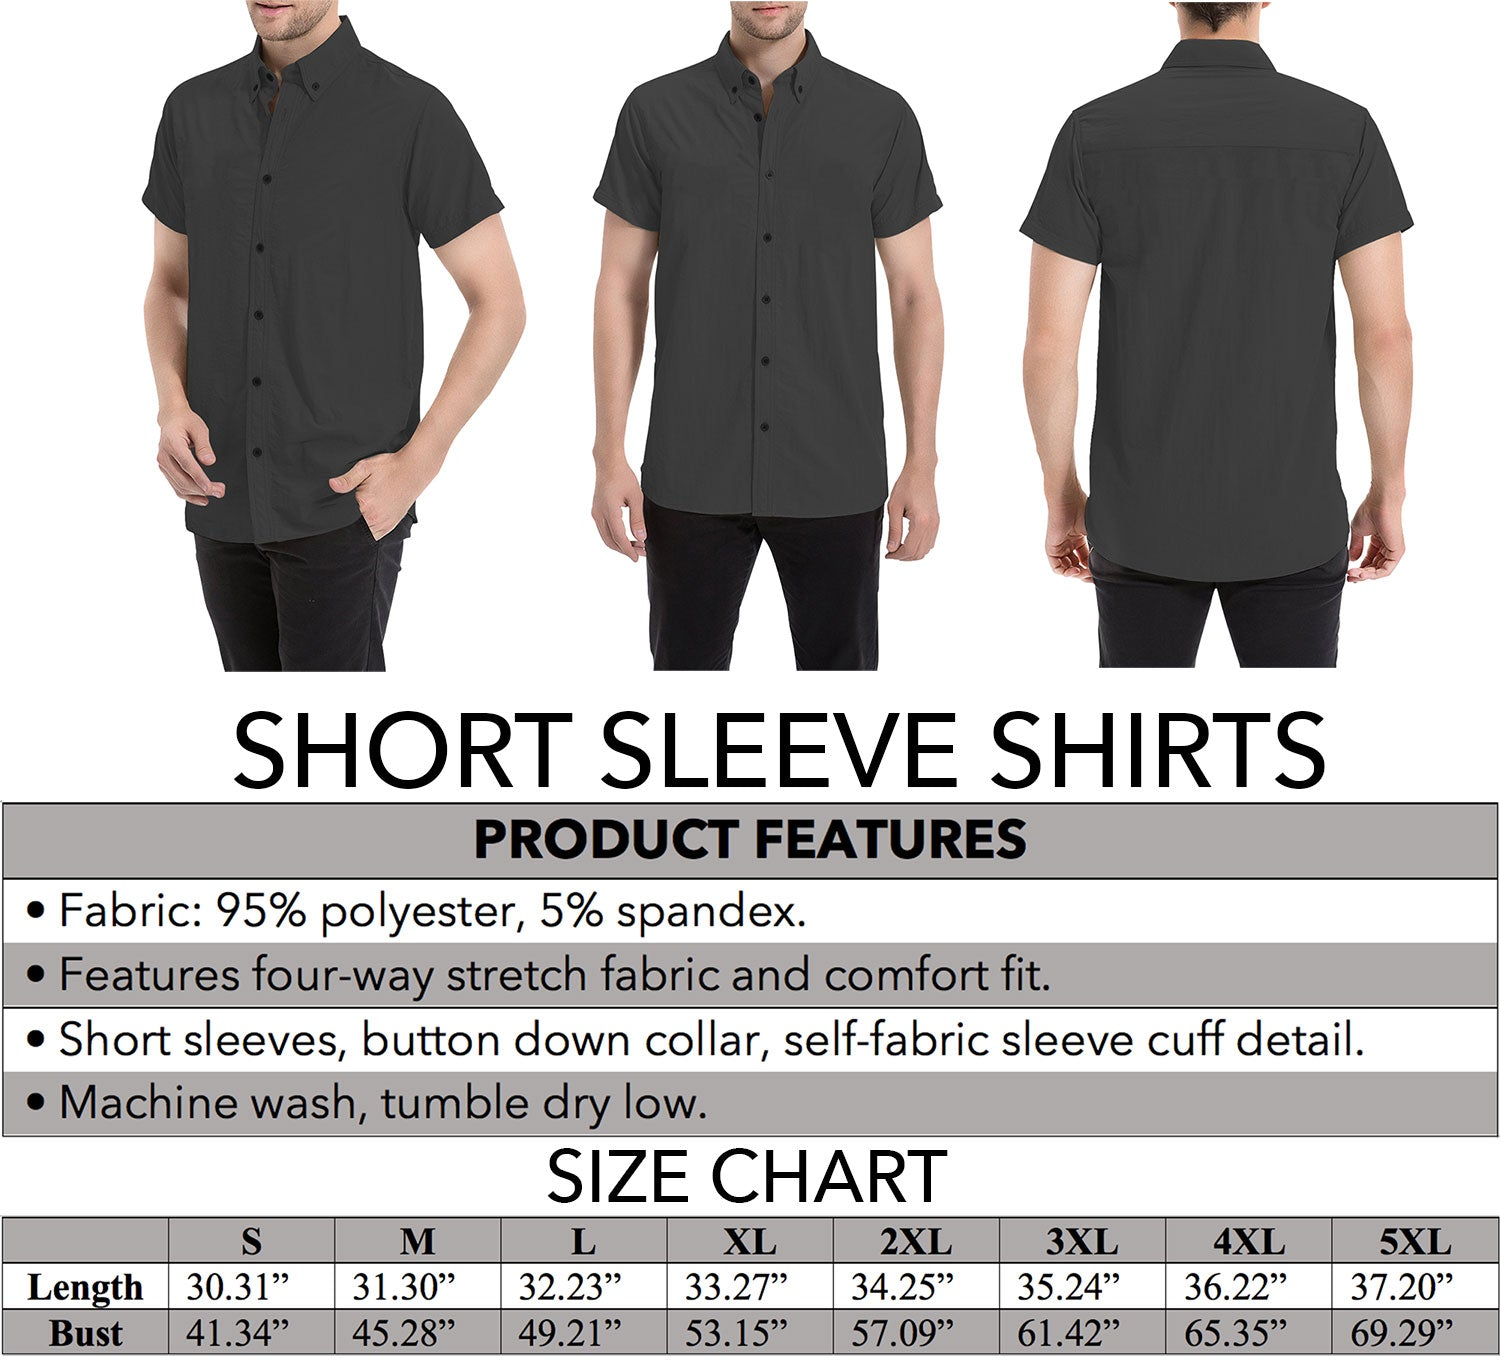 Tartan Short Sleeve Shirts Product Details and Sizing